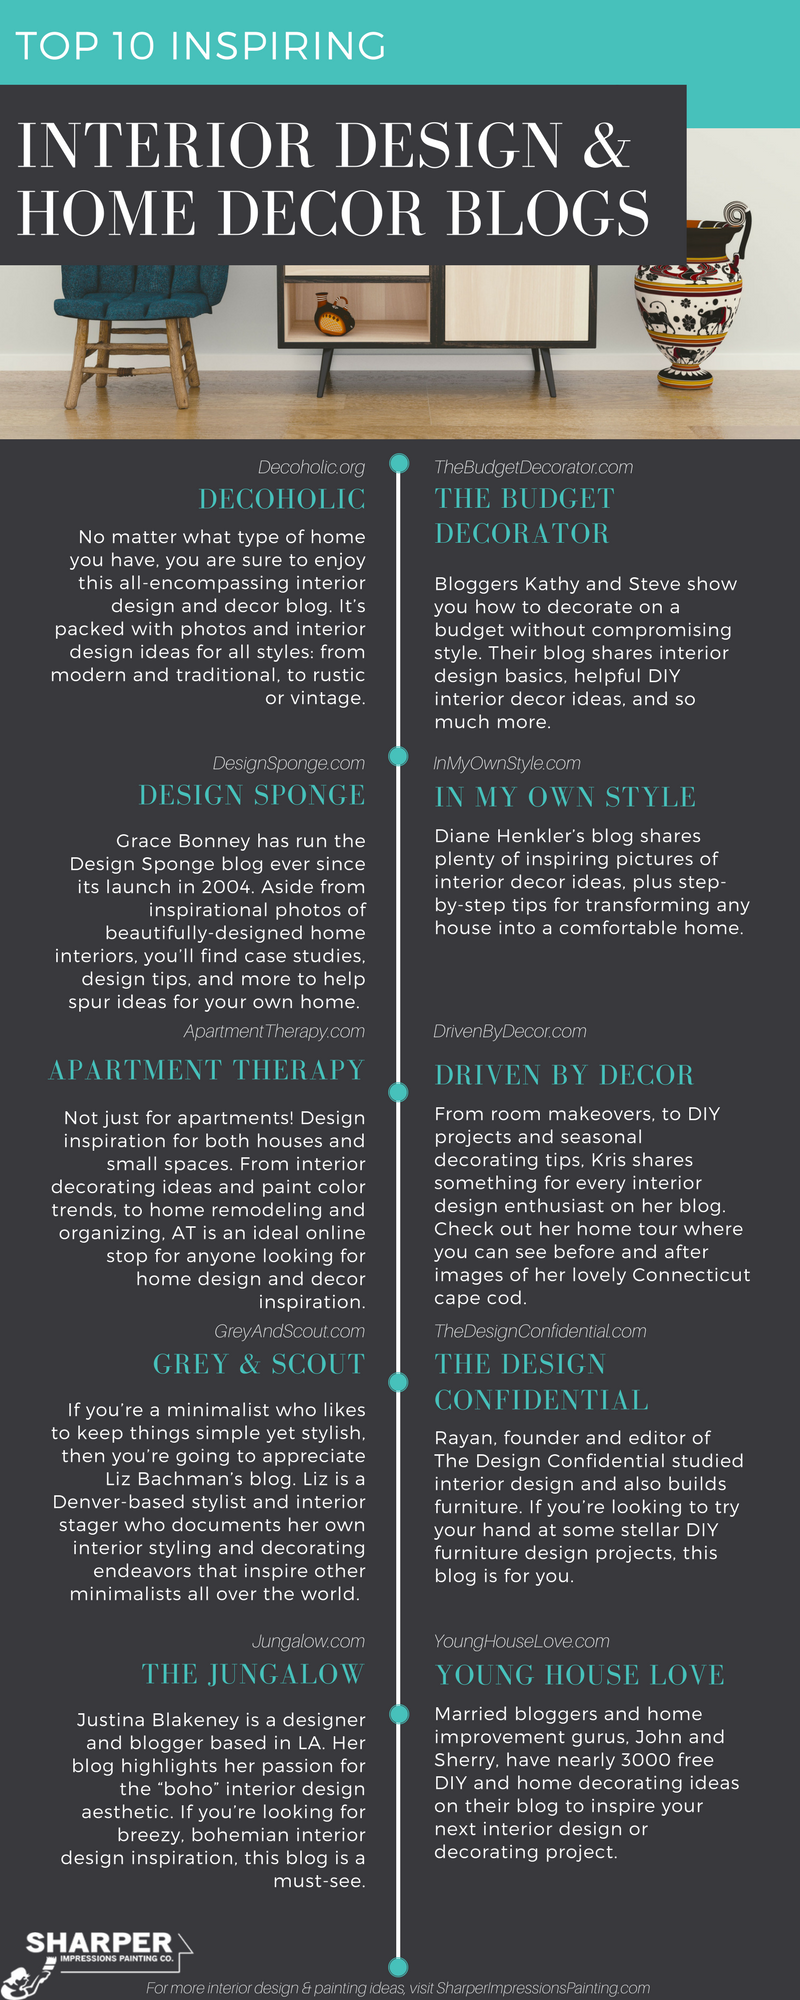 10 inspiring interior design and home decor blogs infographic